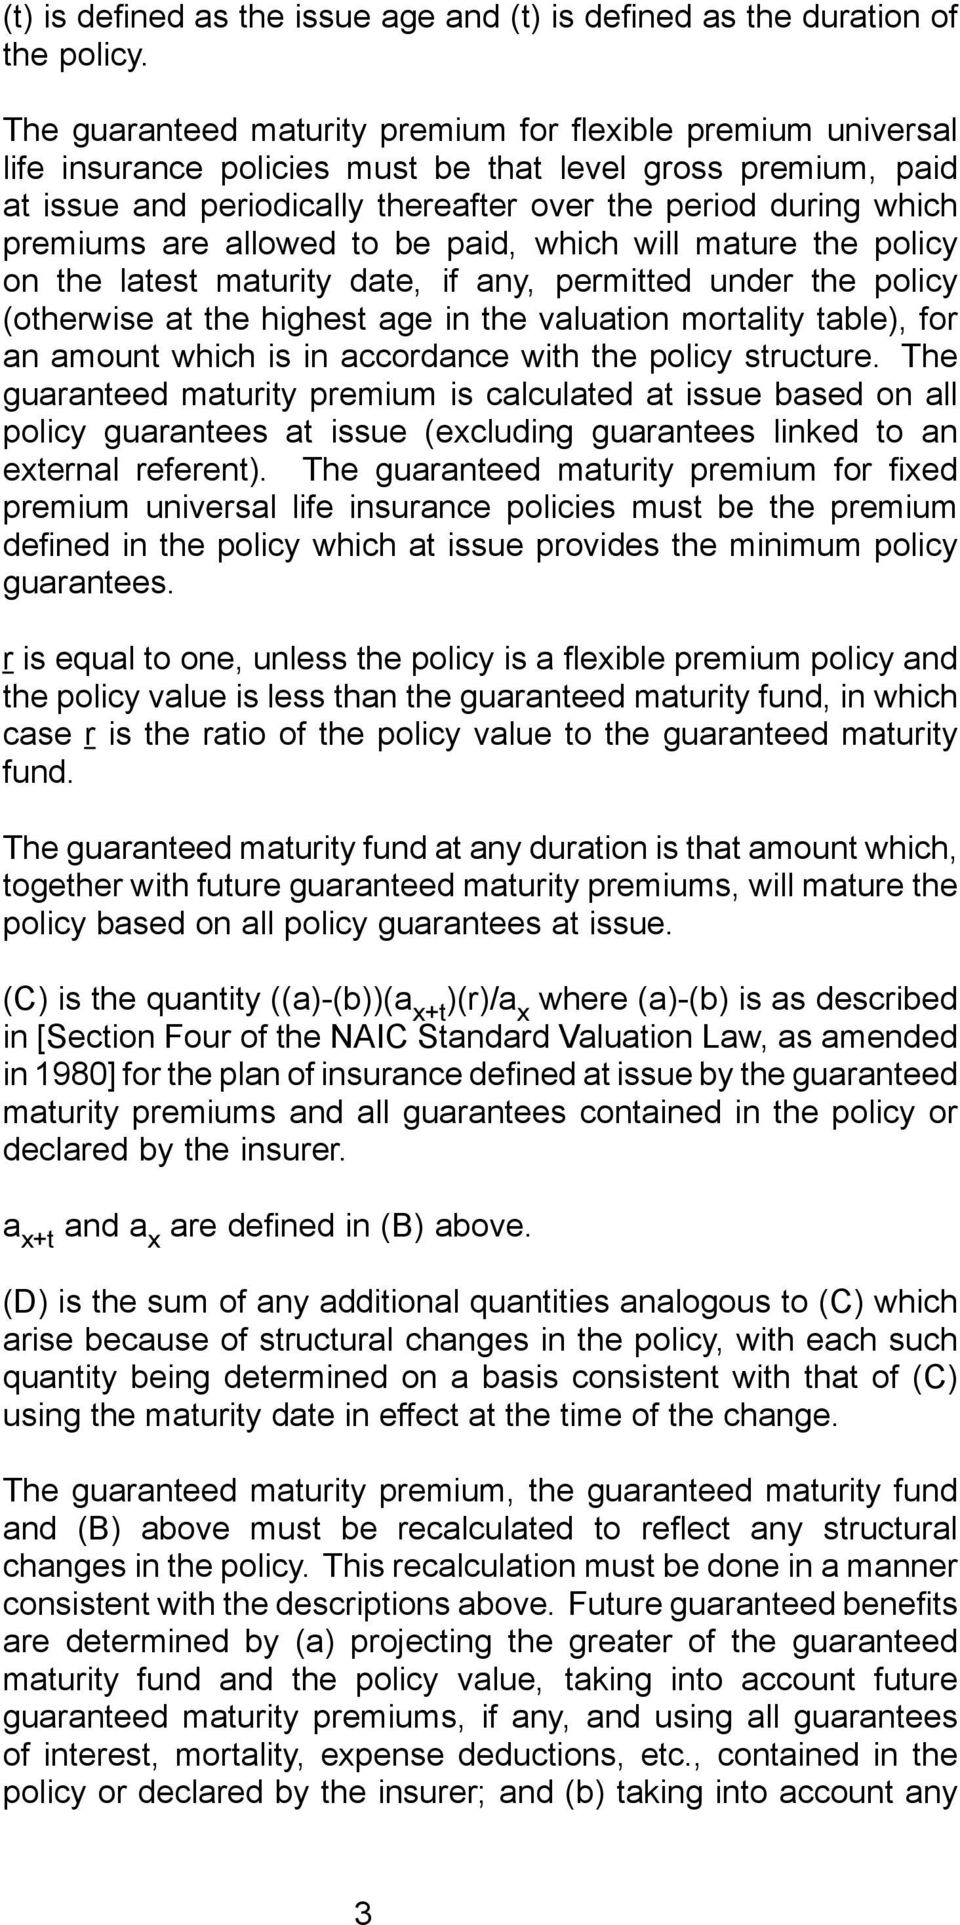 are allowed to be paid, which will mature the policy on the latest maturity date, if any, permitted under the policy (otherwise at the highest age in the valuation mortality table), for an amount